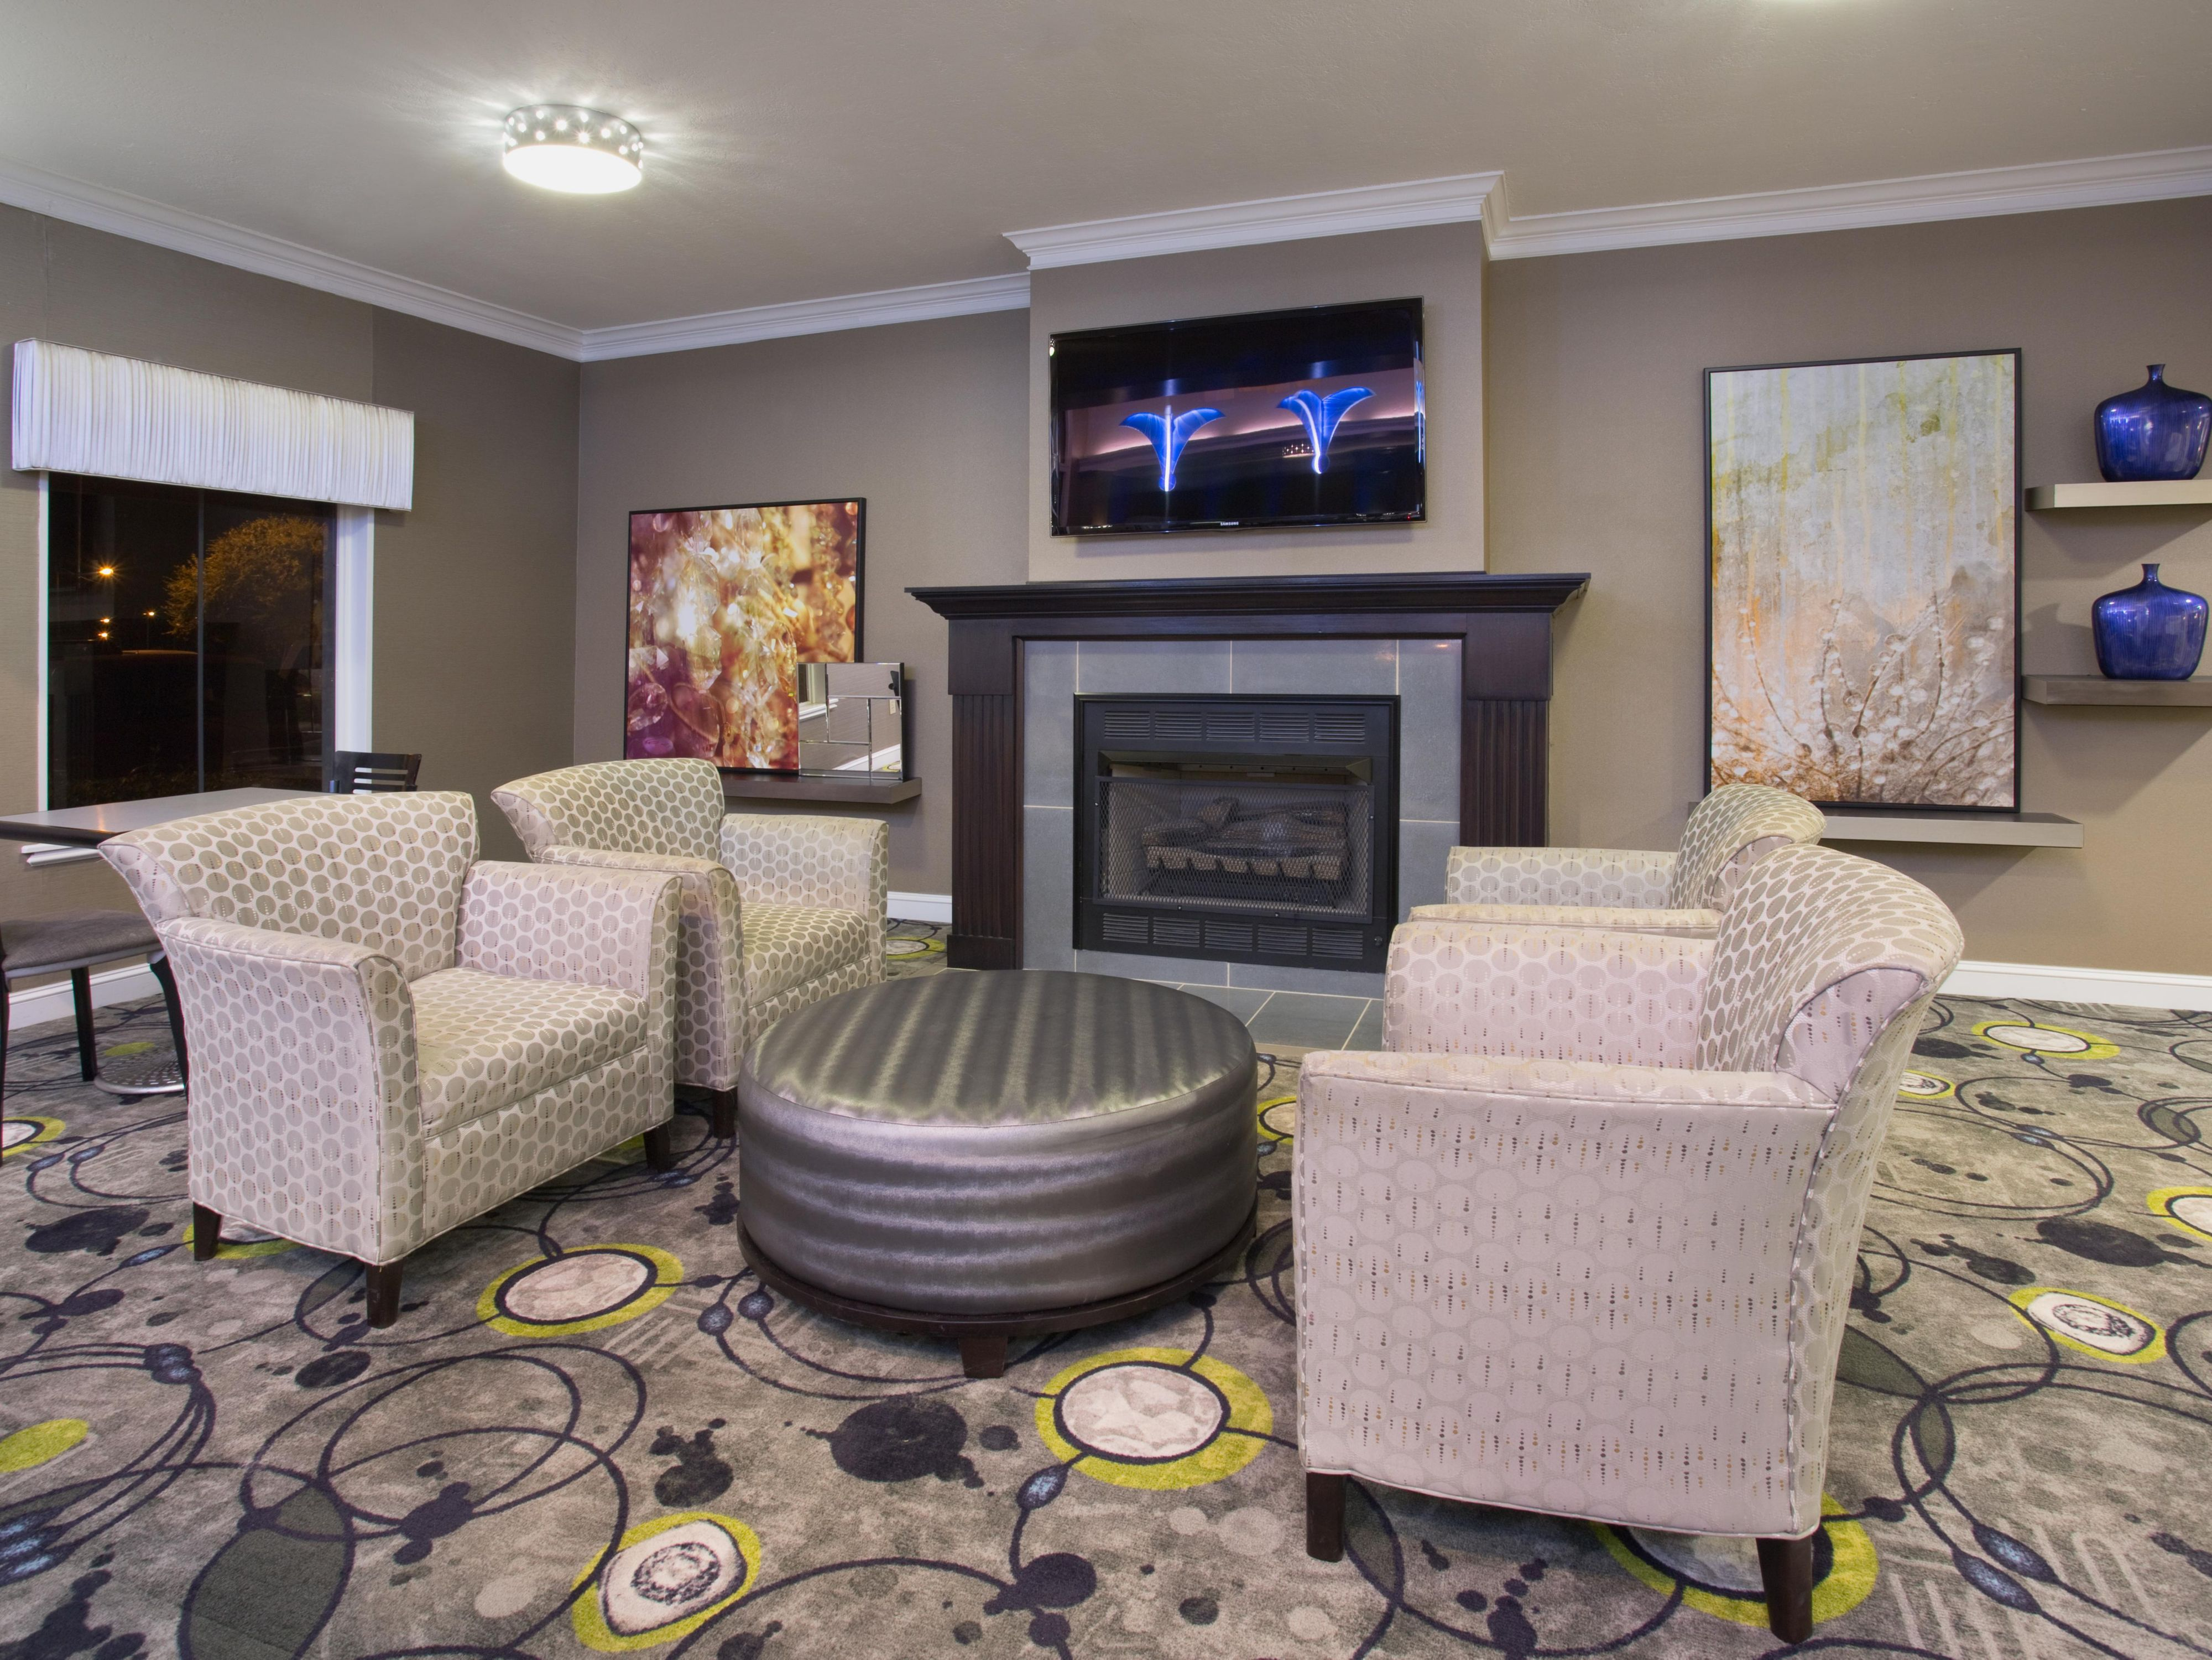 Relax in our comfortable Lobby Lounge area